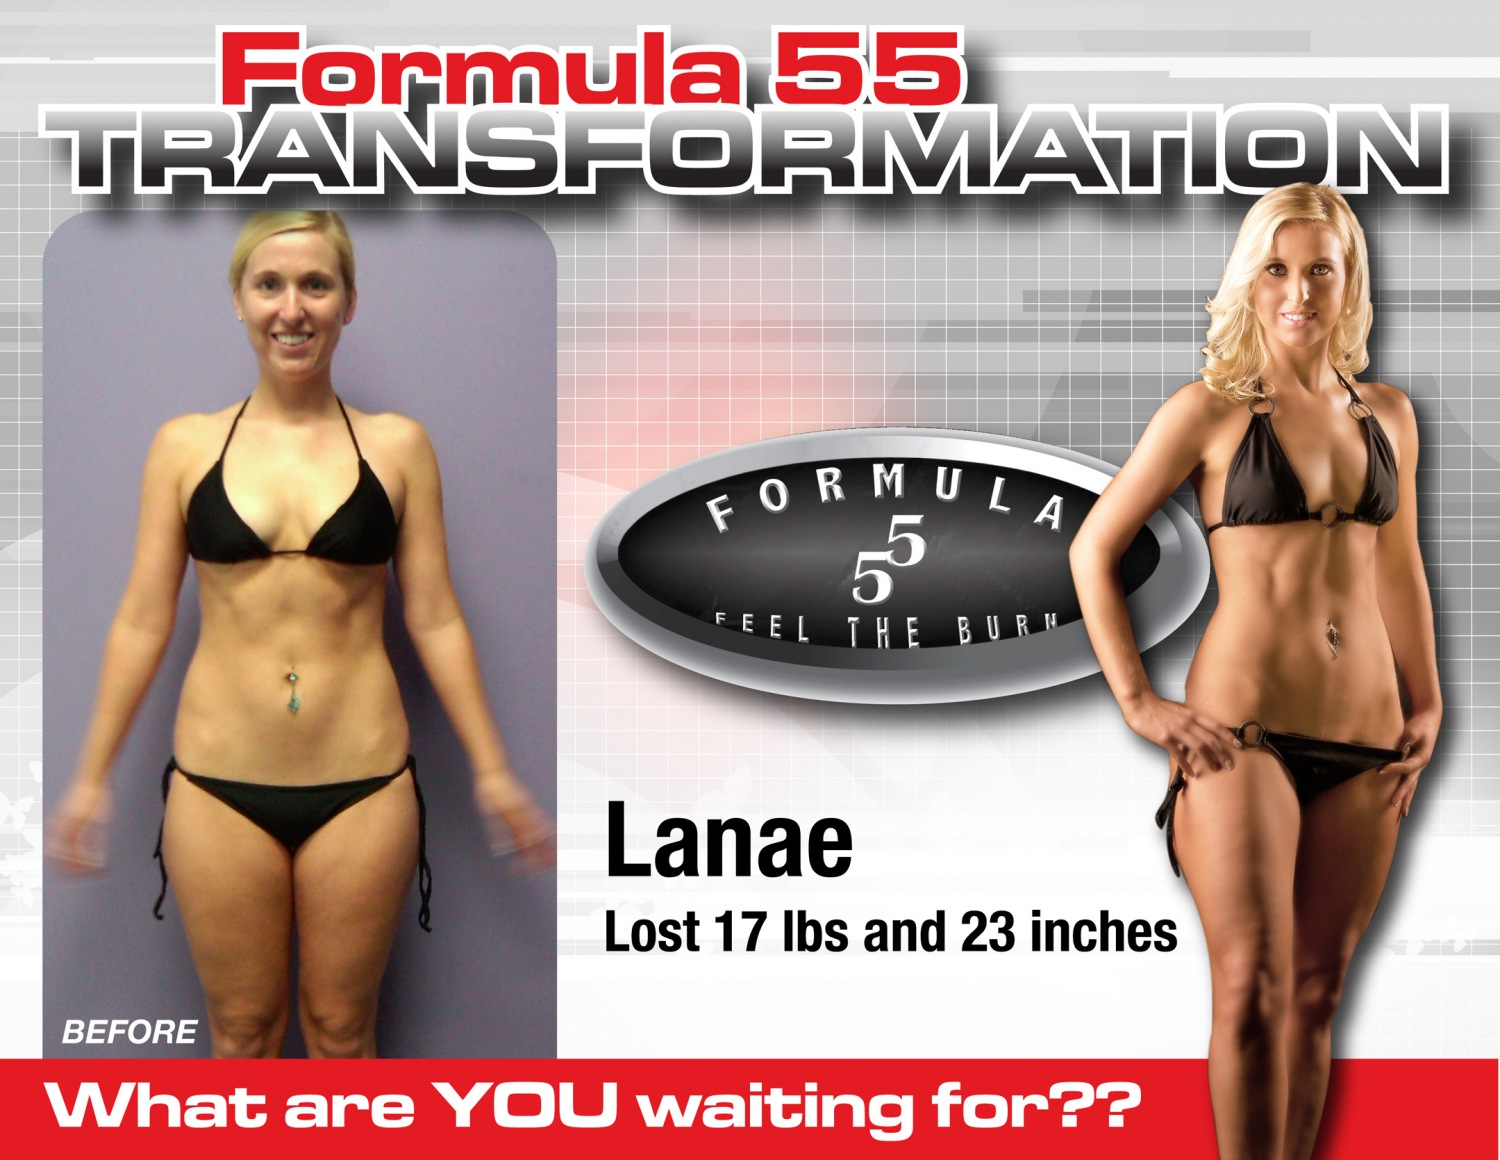 form-55-Transformation-Lanae-Front.jpg